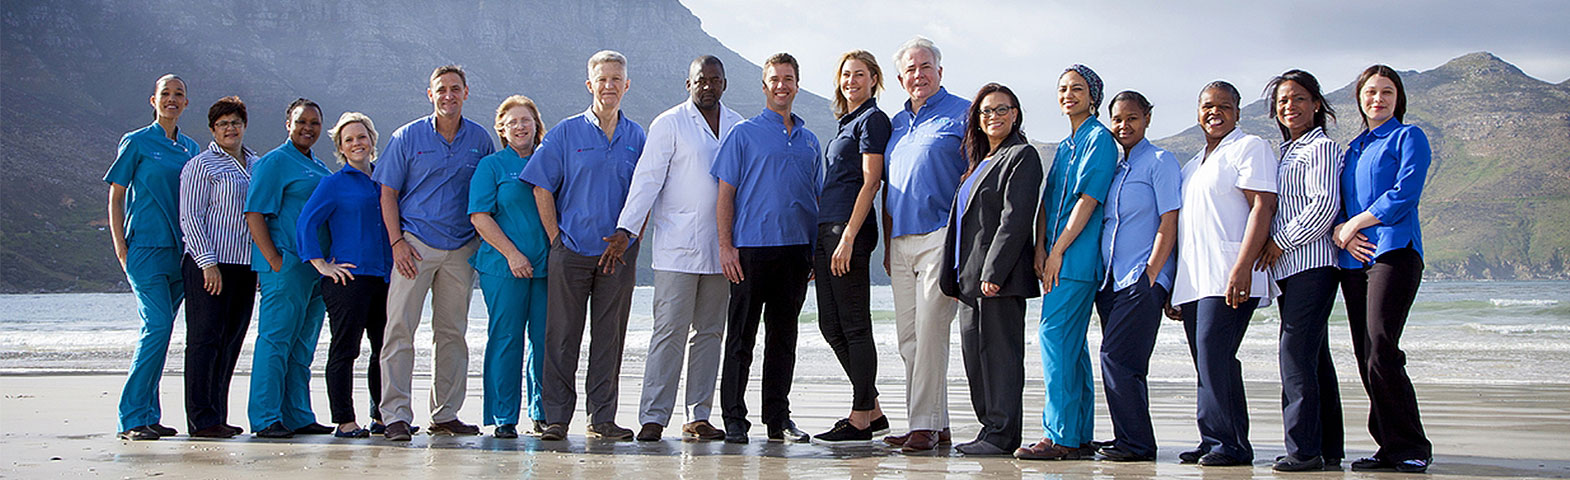 The Hout Bay Dental Studio dentists & team